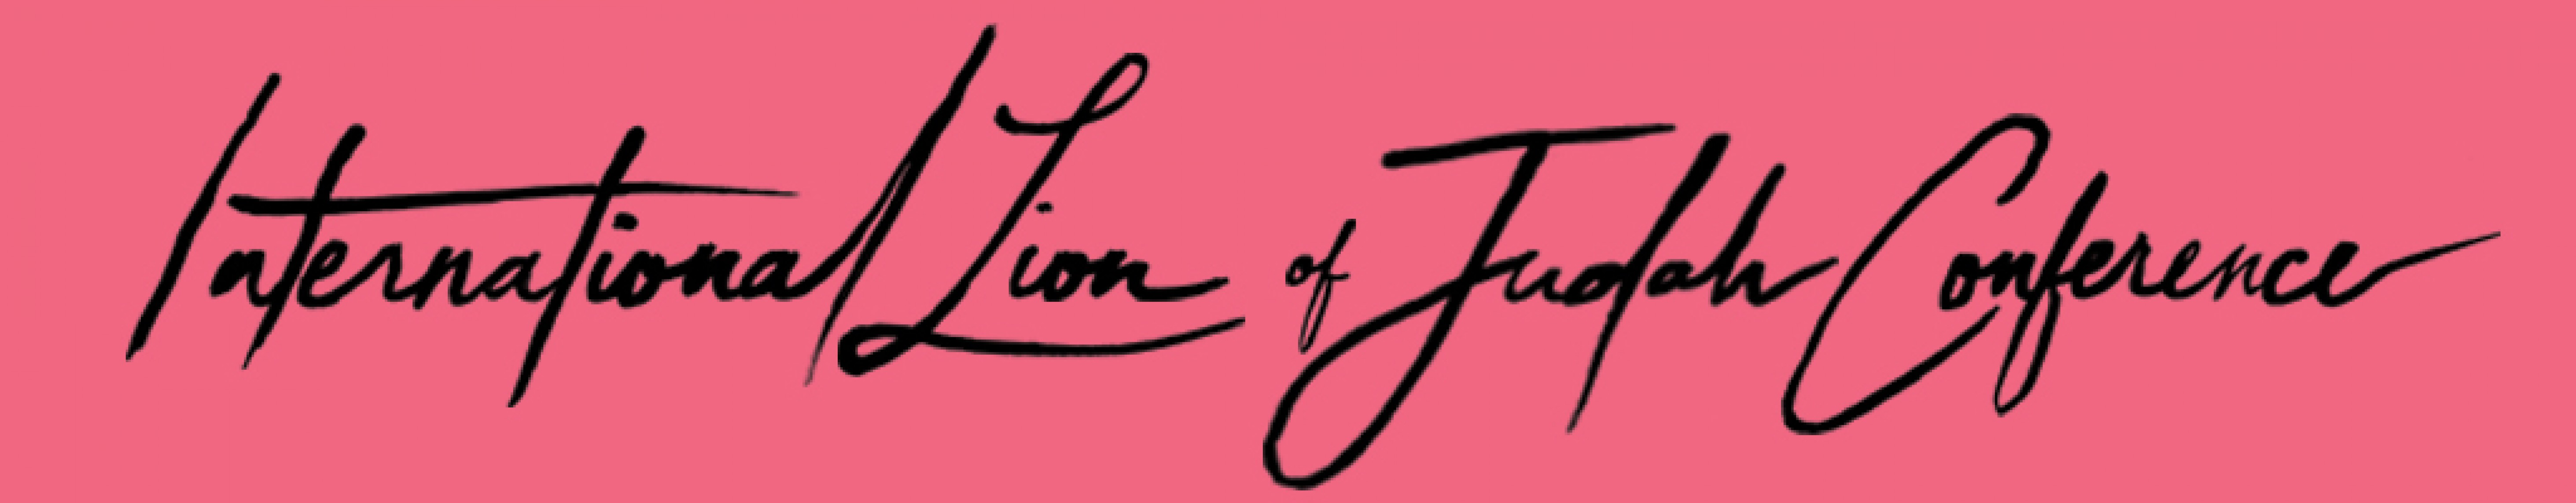 Womens Philanthropy Jewish Federation Of Greater Indianapolis Inc